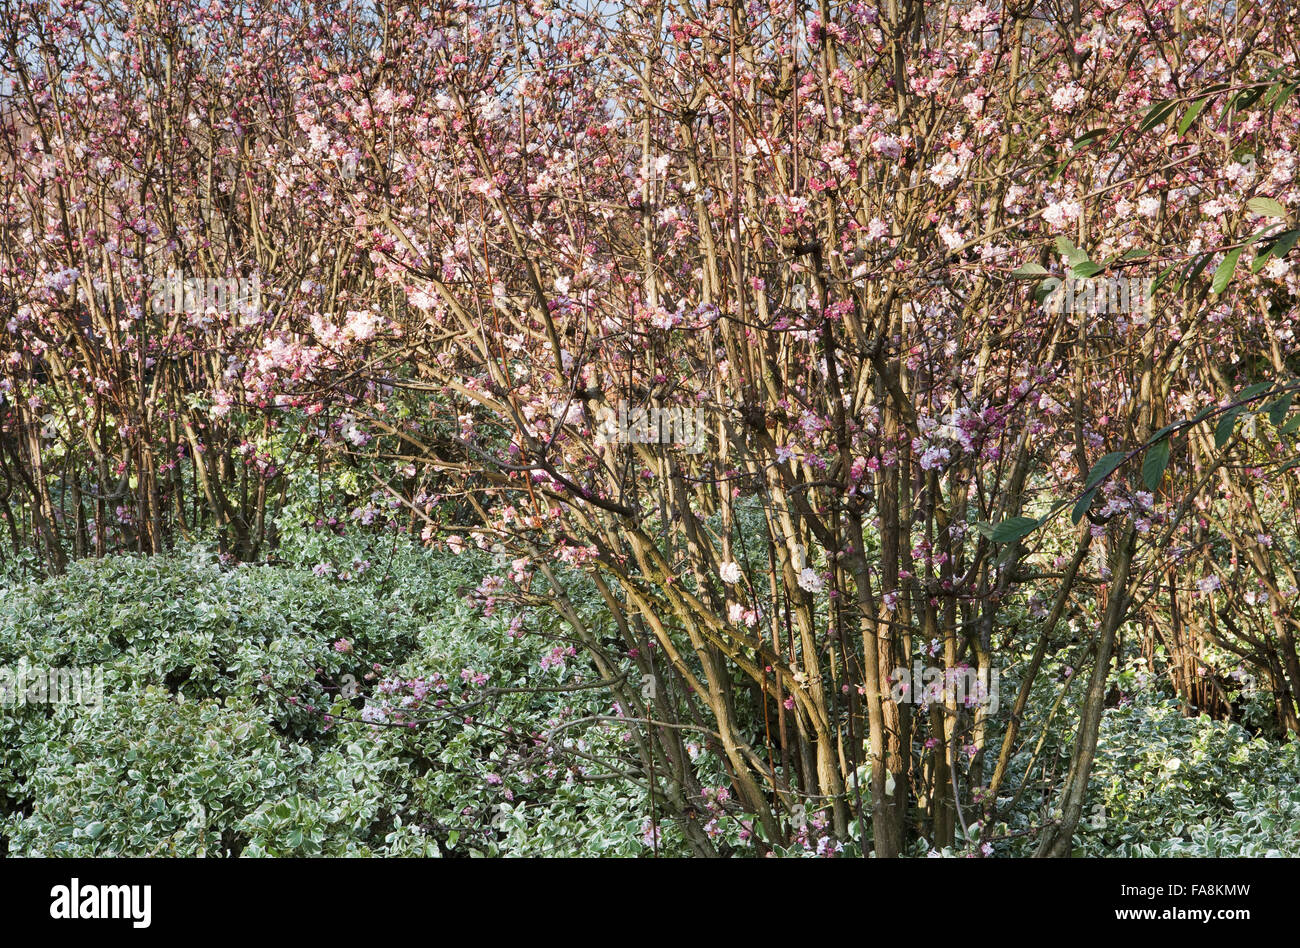 viburnum x bodnantense 39 dawn 39 and euonymus fortunei. Black Bedroom Furniture Sets. Home Design Ideas